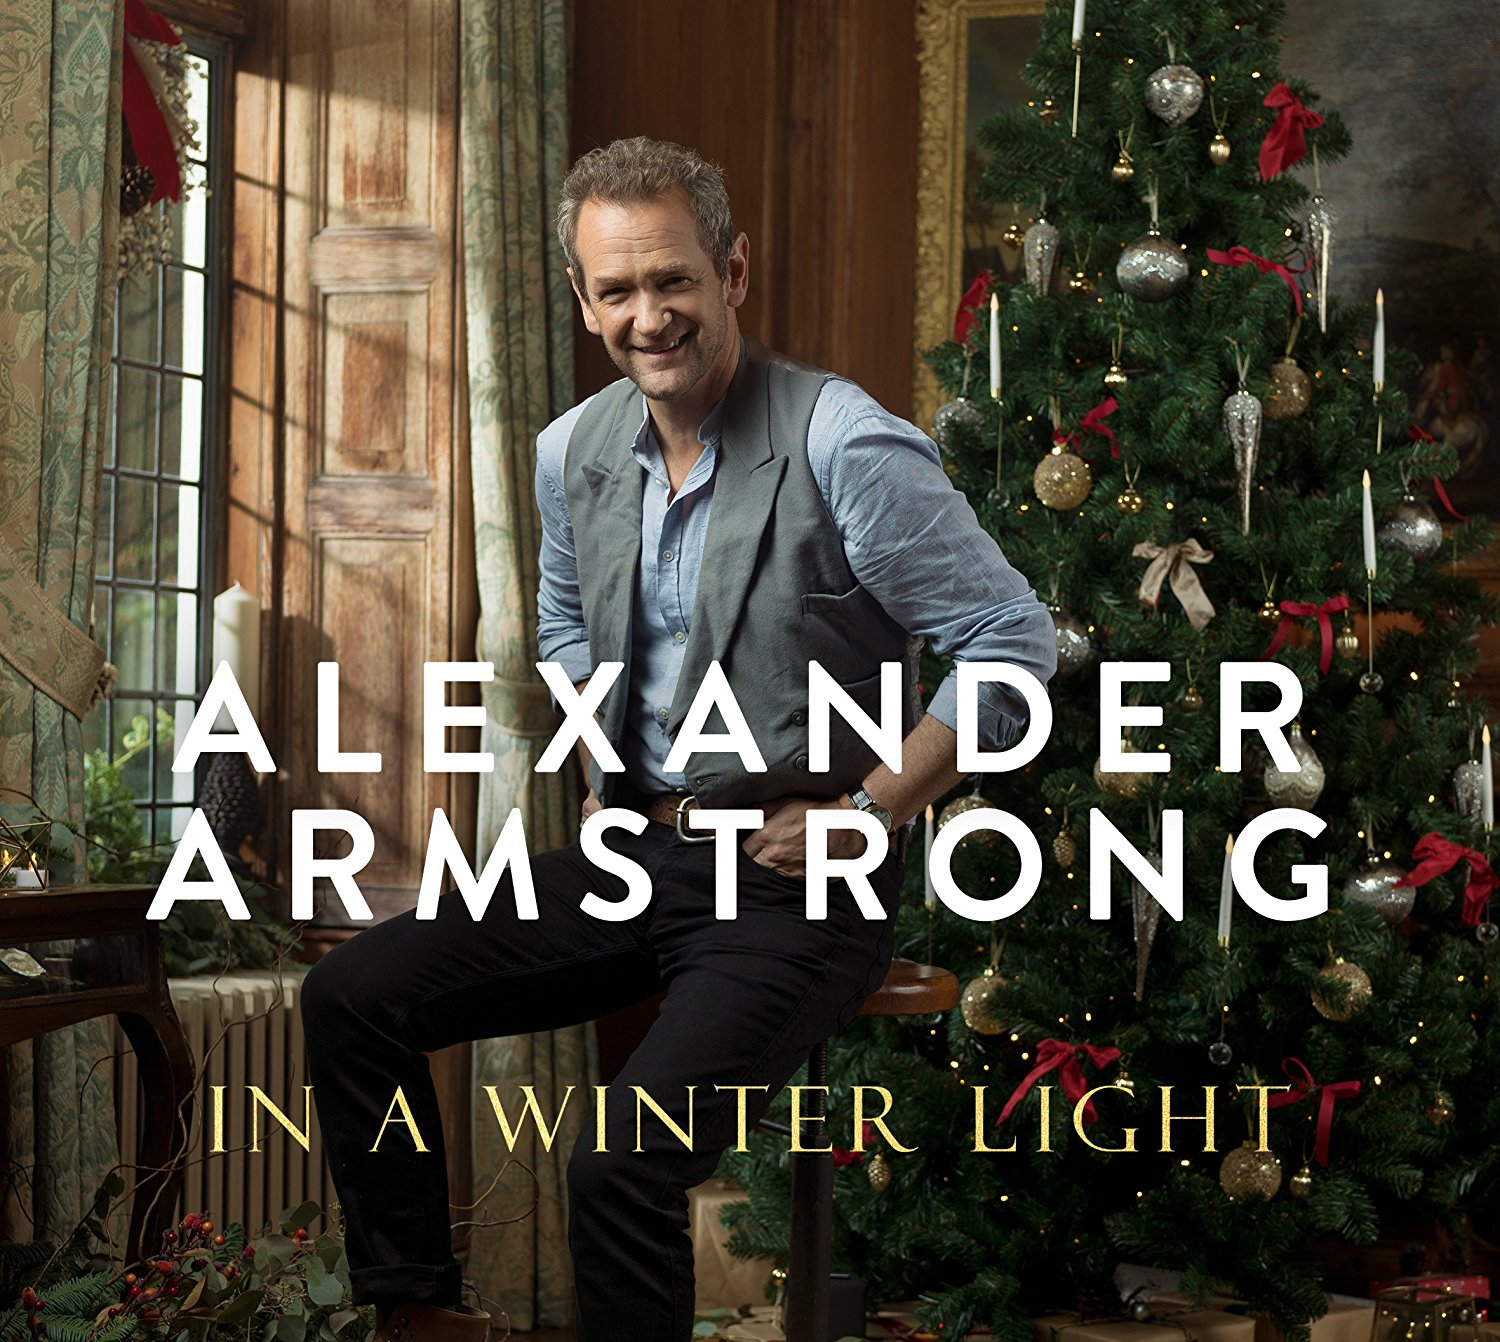 In a Winter Light Alexander Armstrong